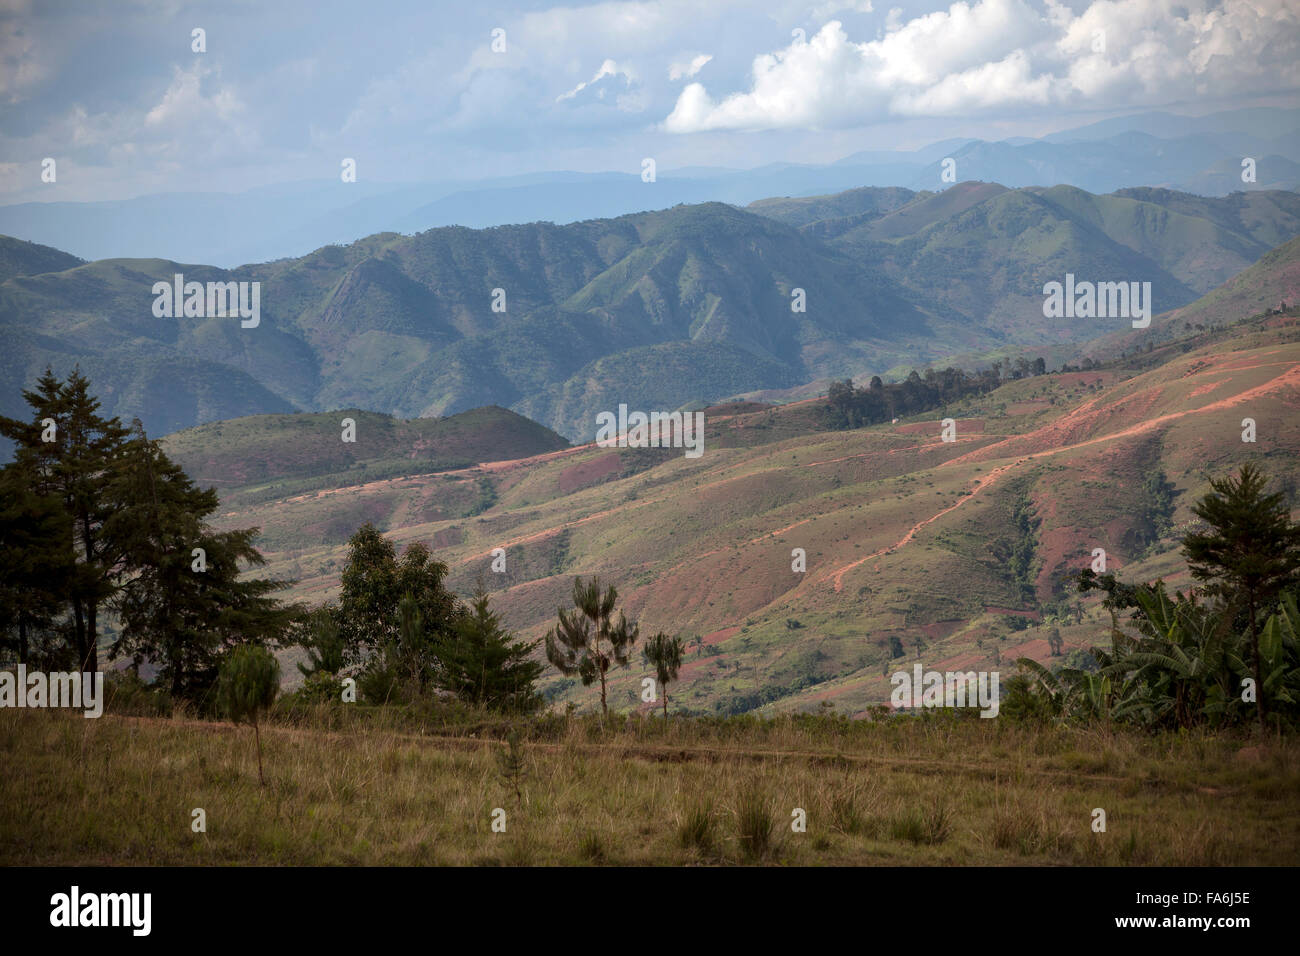 The Kungwe-Mahale Mountains rise above Kigoma Region in Western Tanzania. - Stock Image